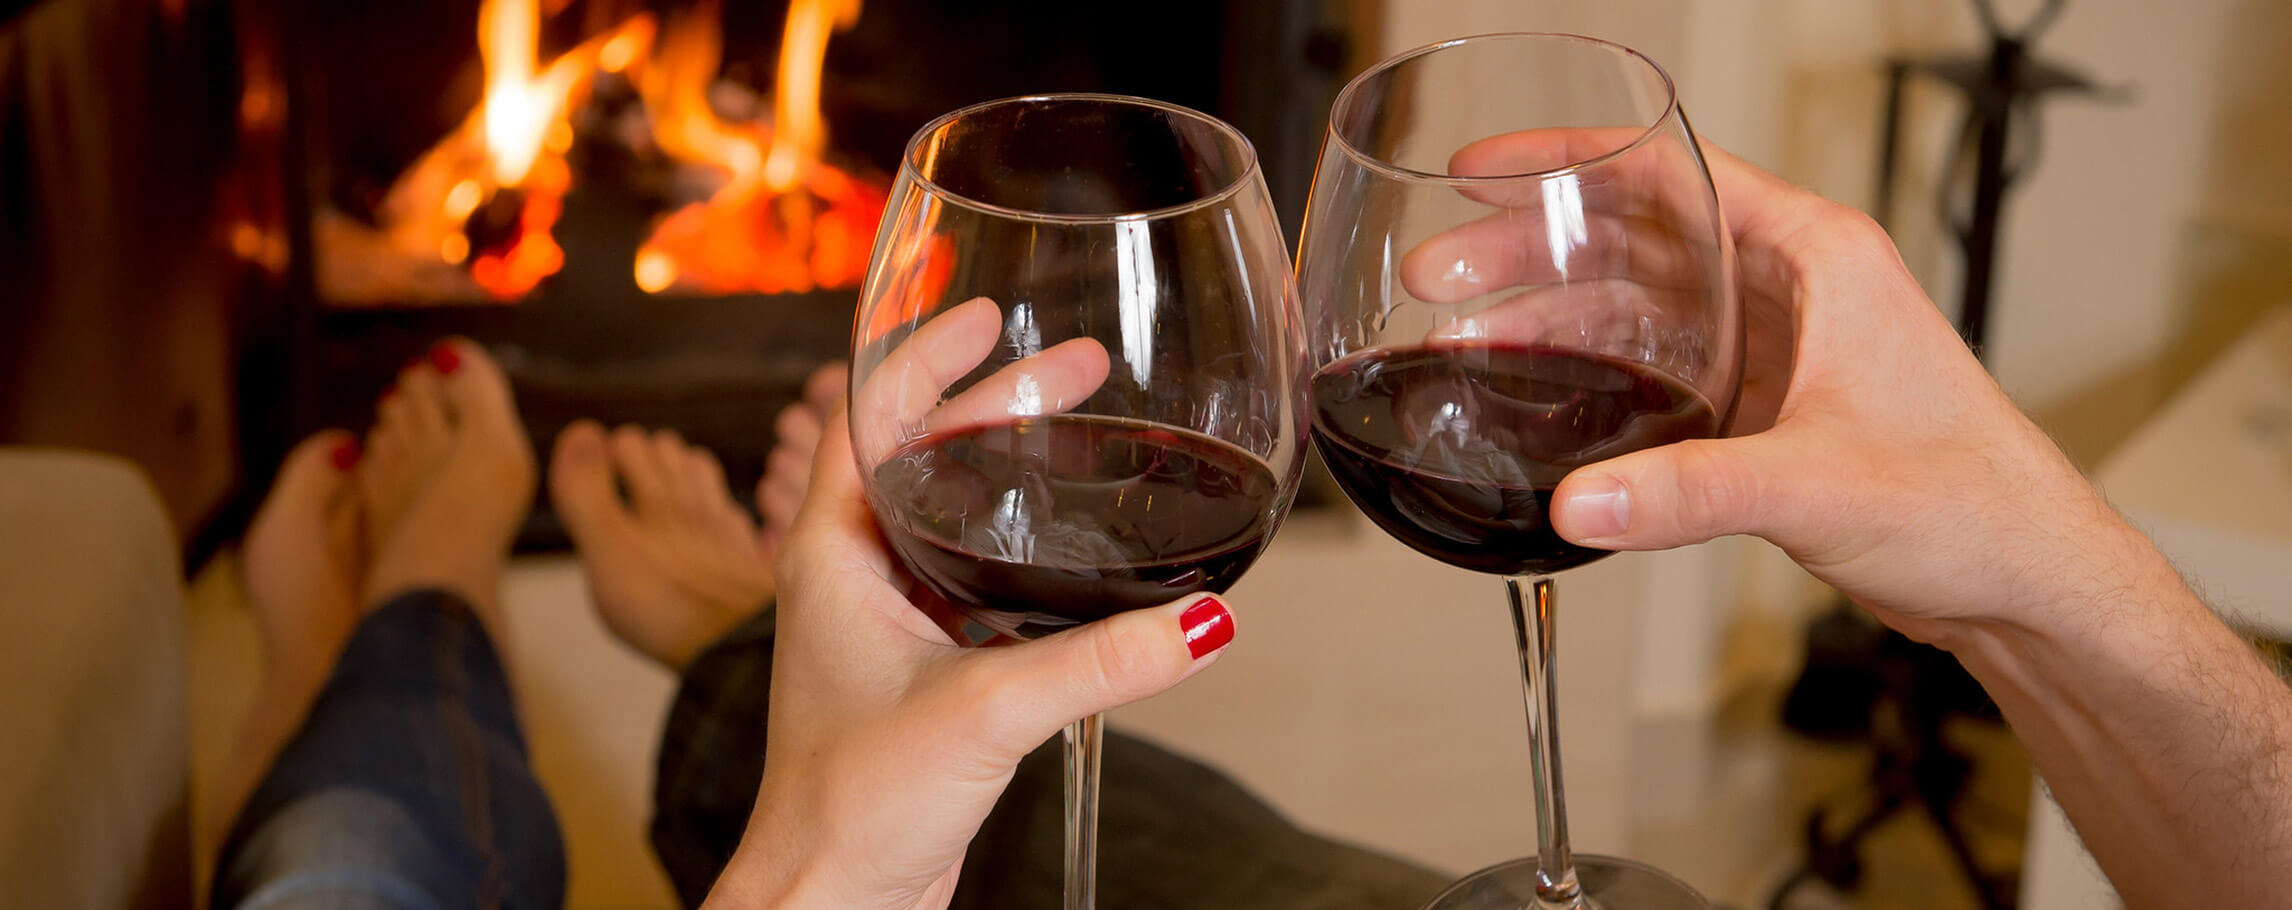 Couple drinking wine in front of a fire